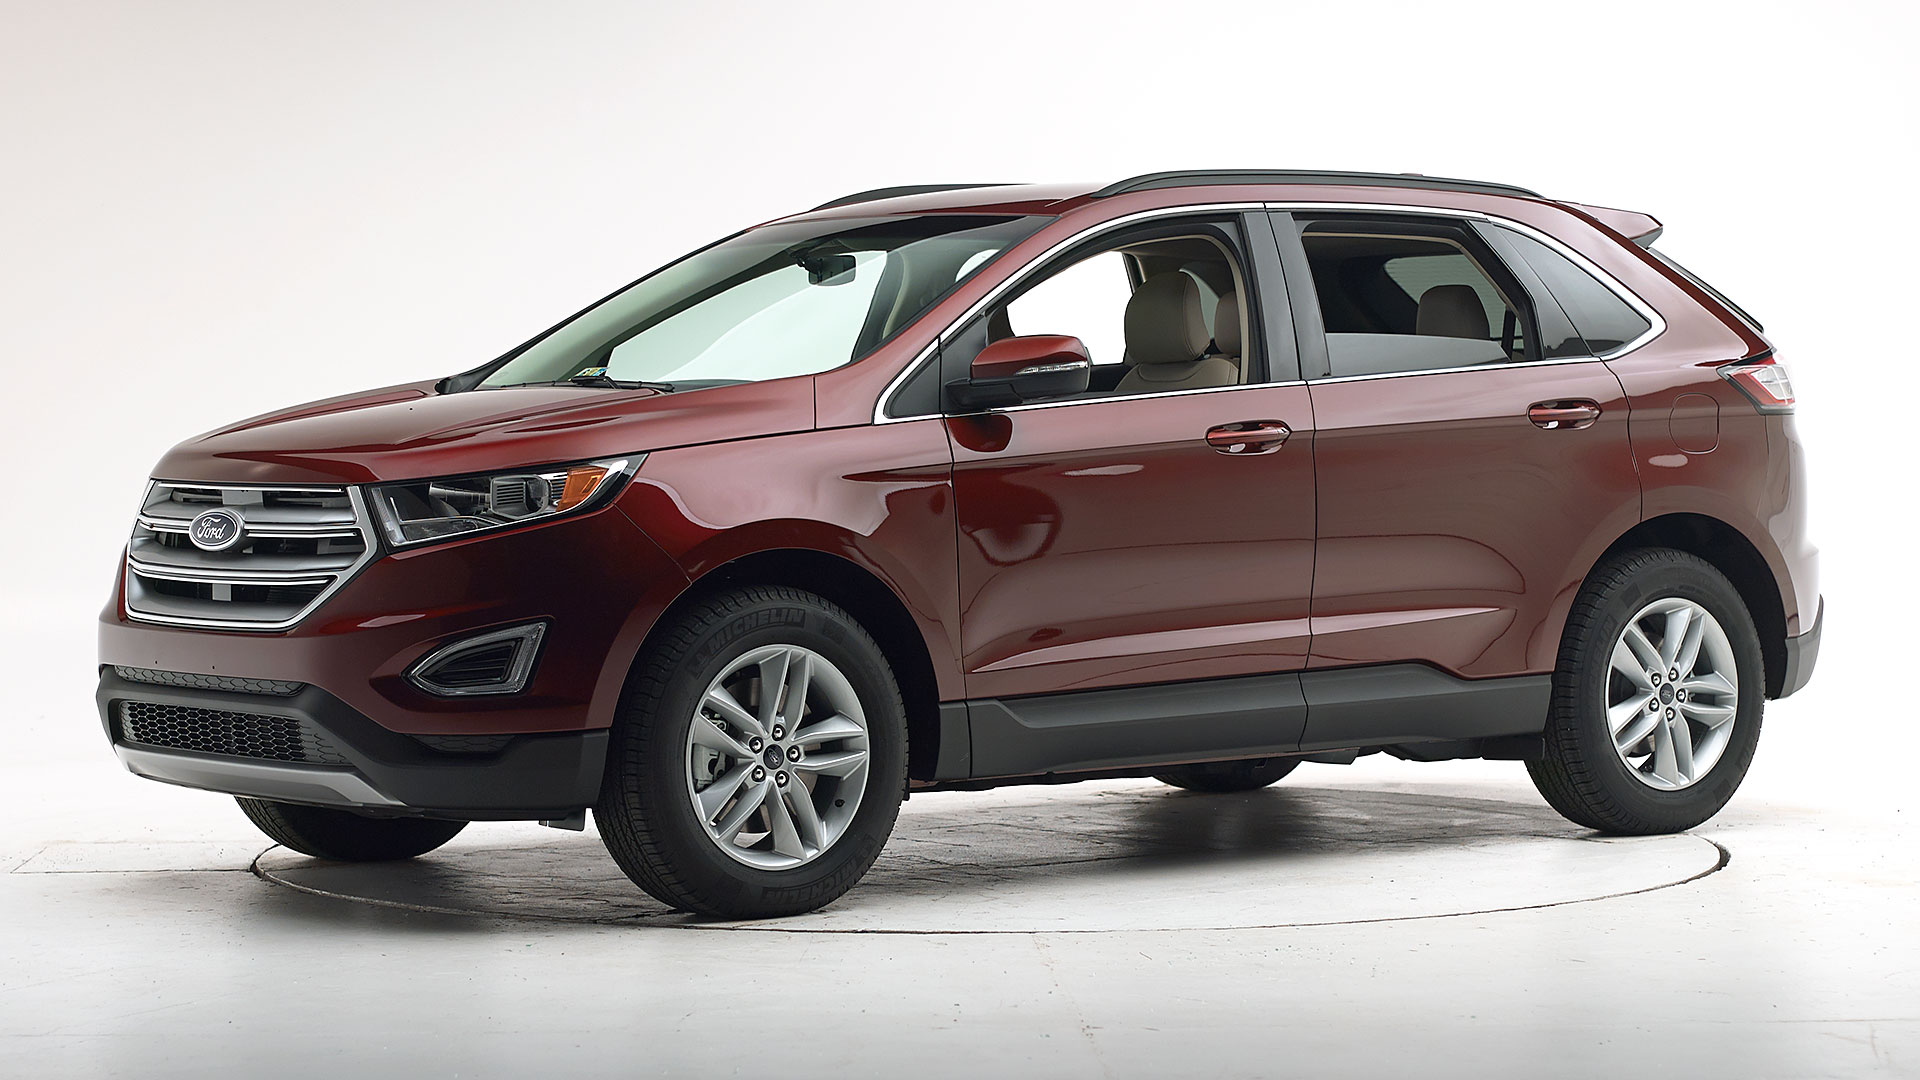 2016 Ford Edge 4-door SUV